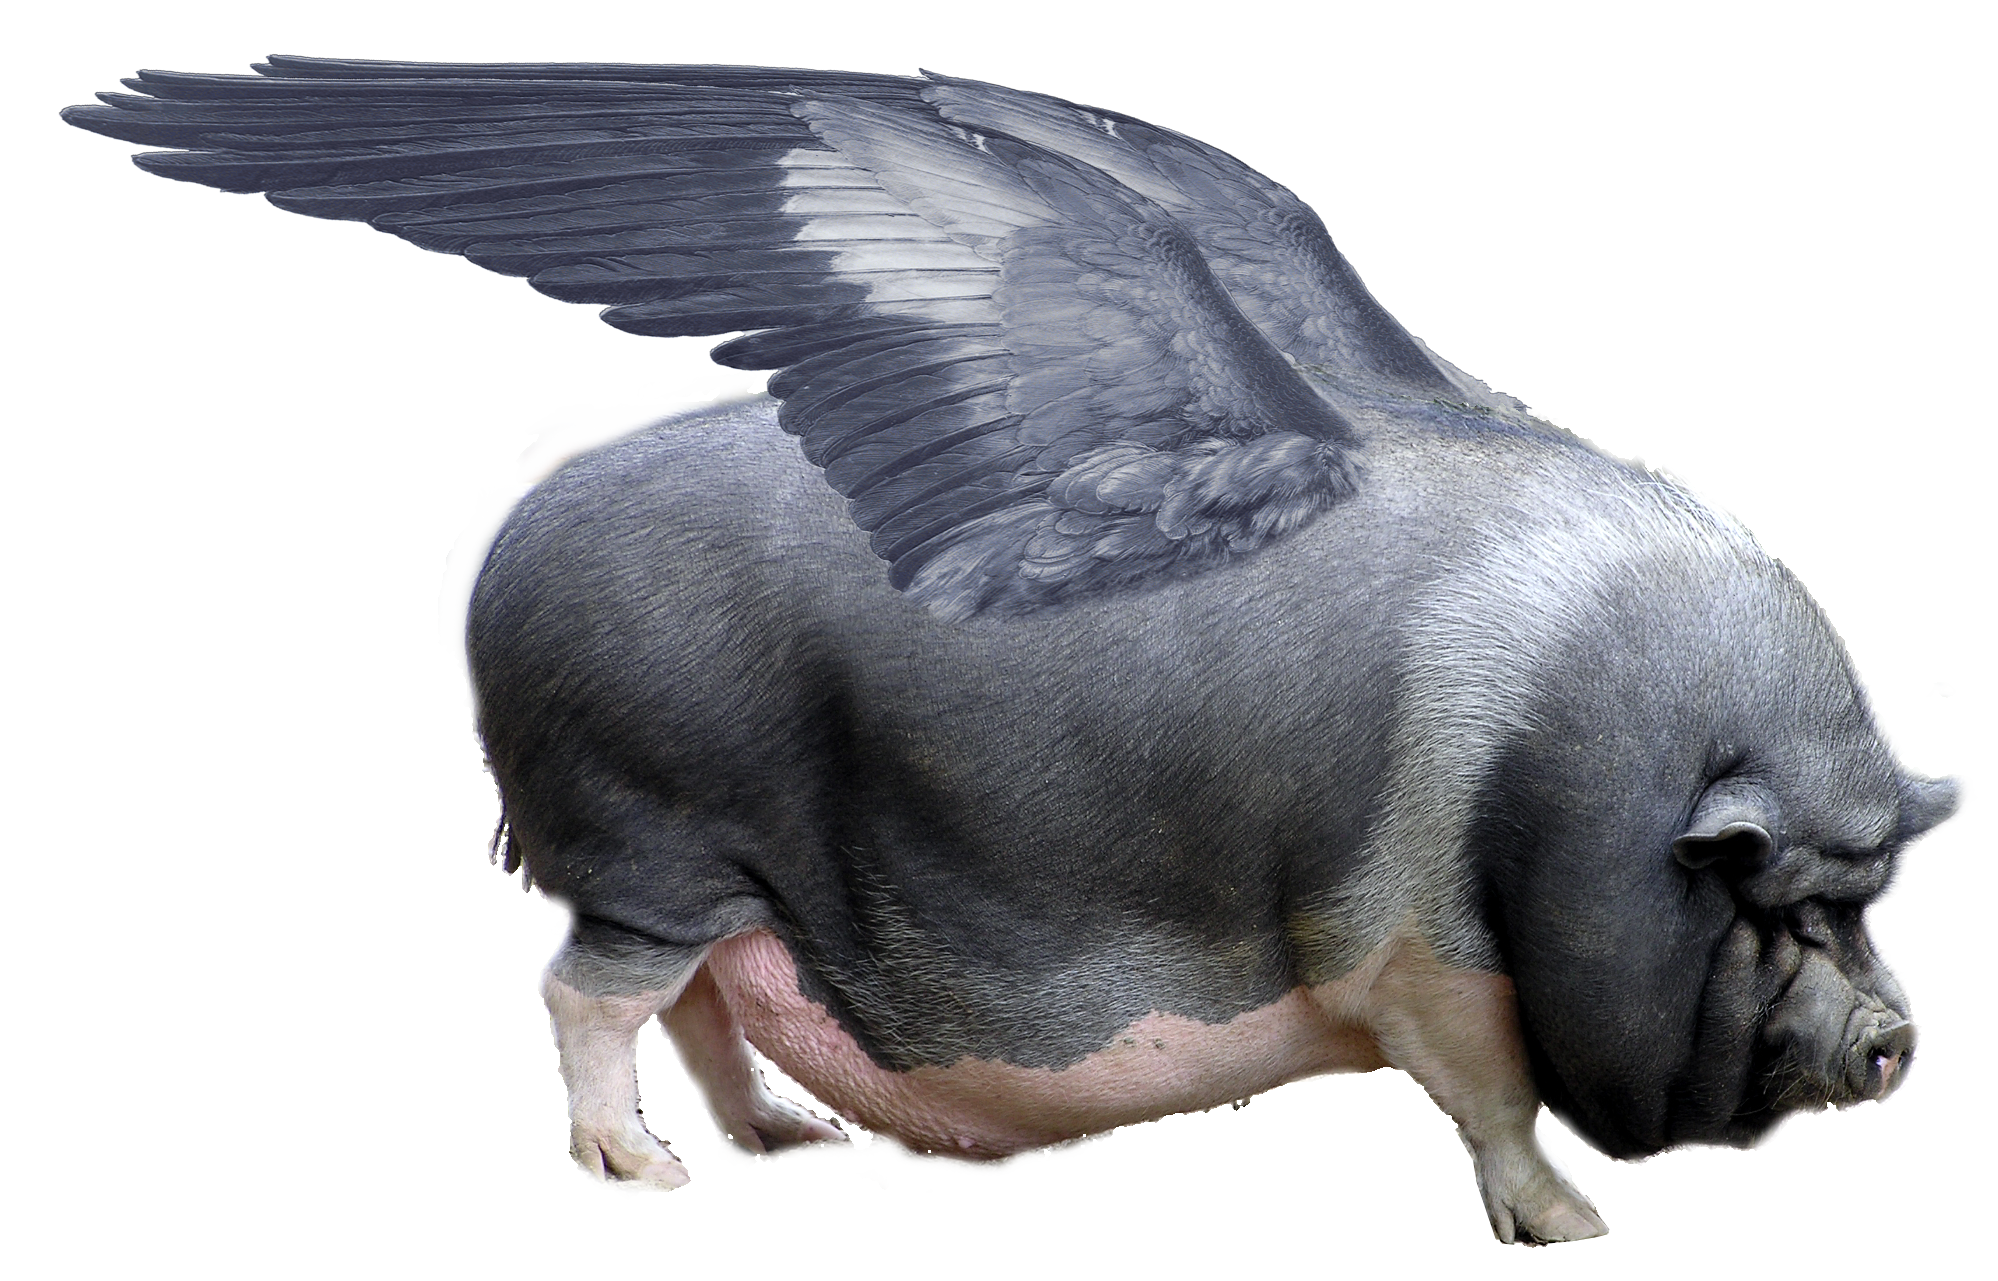 When Pigs Fly Wikipedia